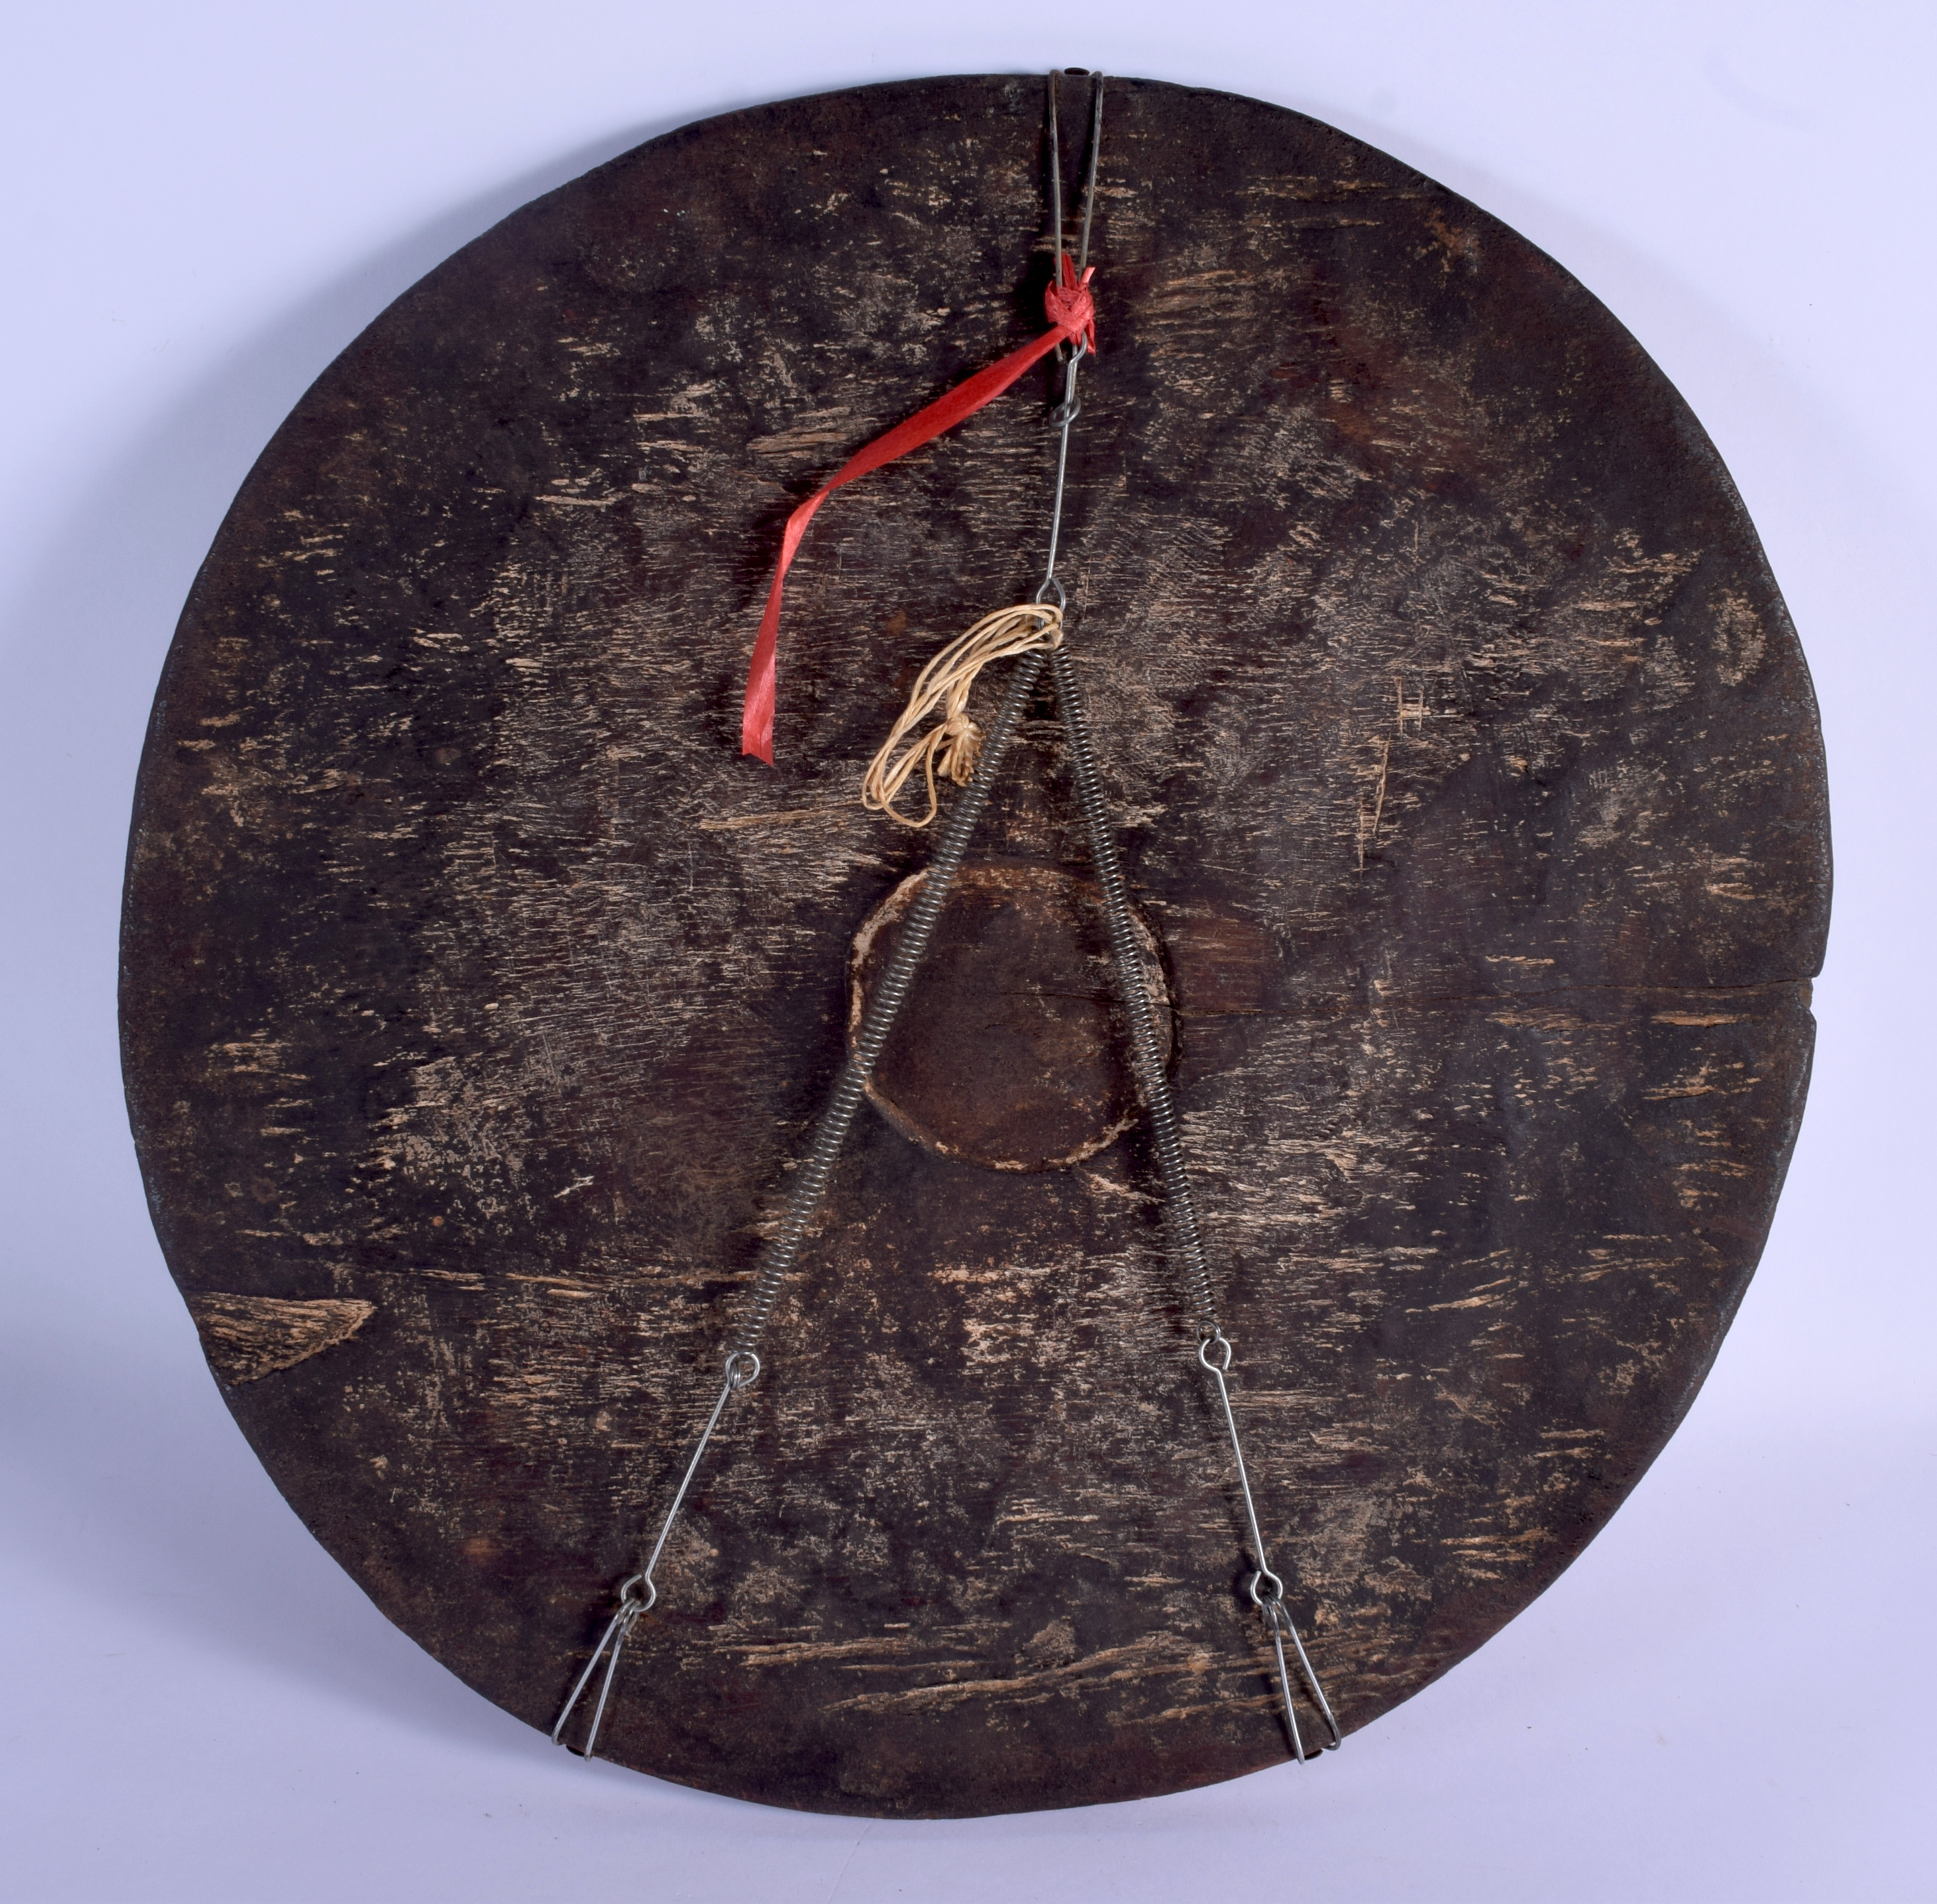 AN AFRICAN TRIBAL DIVINATION CARVED WOOD PLATE. 40 cm x 43 cm. - Image 3 of 3